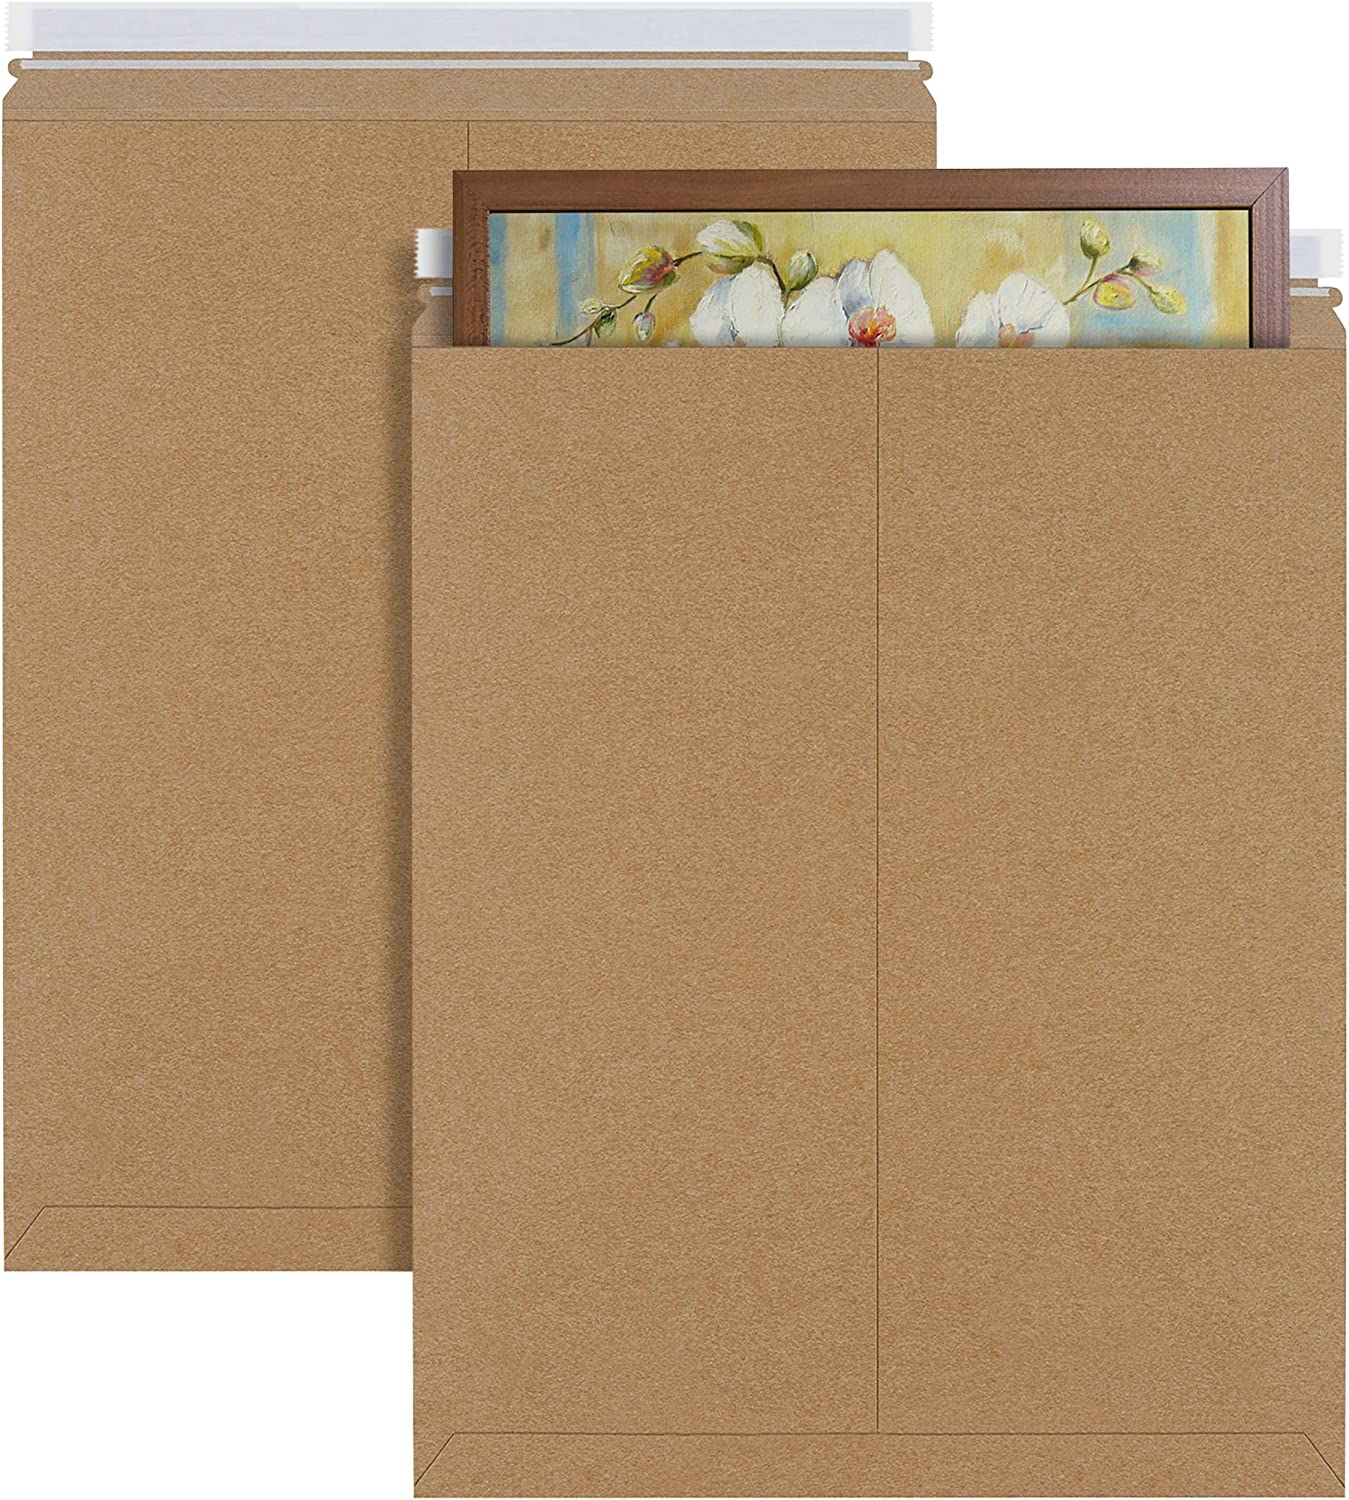 Baltimore Mall APQ Pack of 5 Kraft Rigid Mailers Japan's largest assortment 21. x 17 envelopes Paperboard